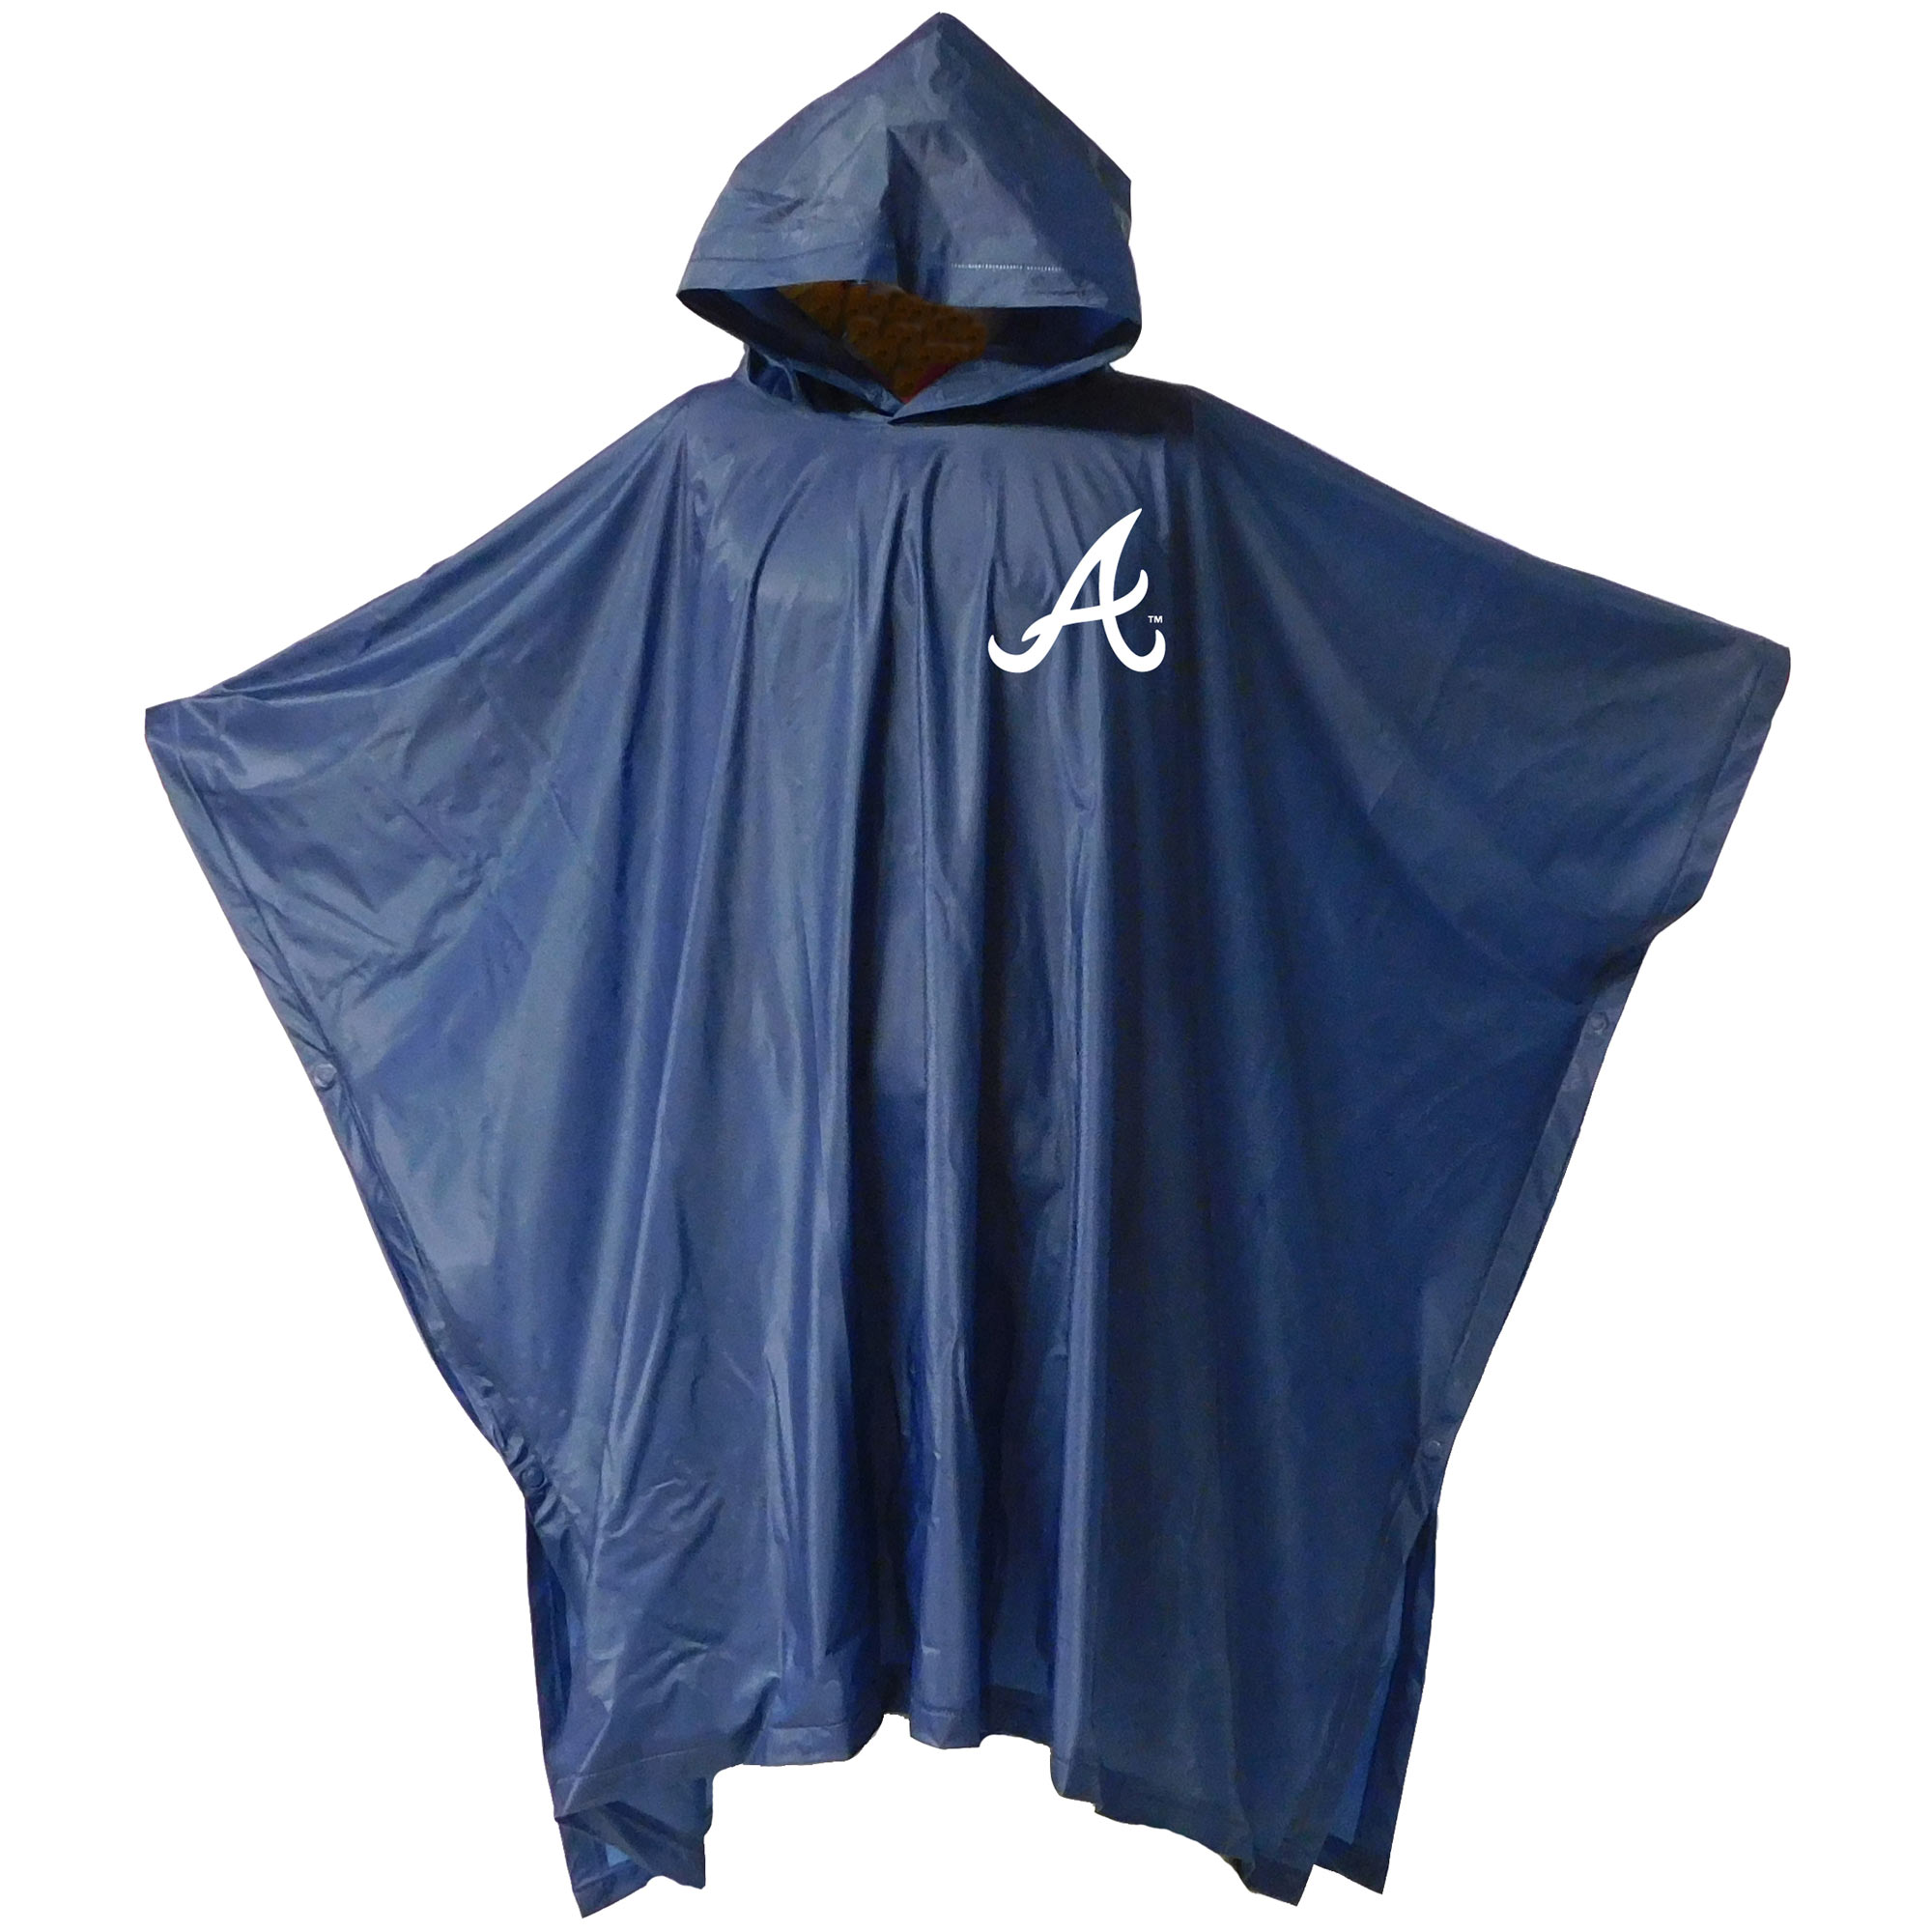 Atlanta Braves Stadium Poncho